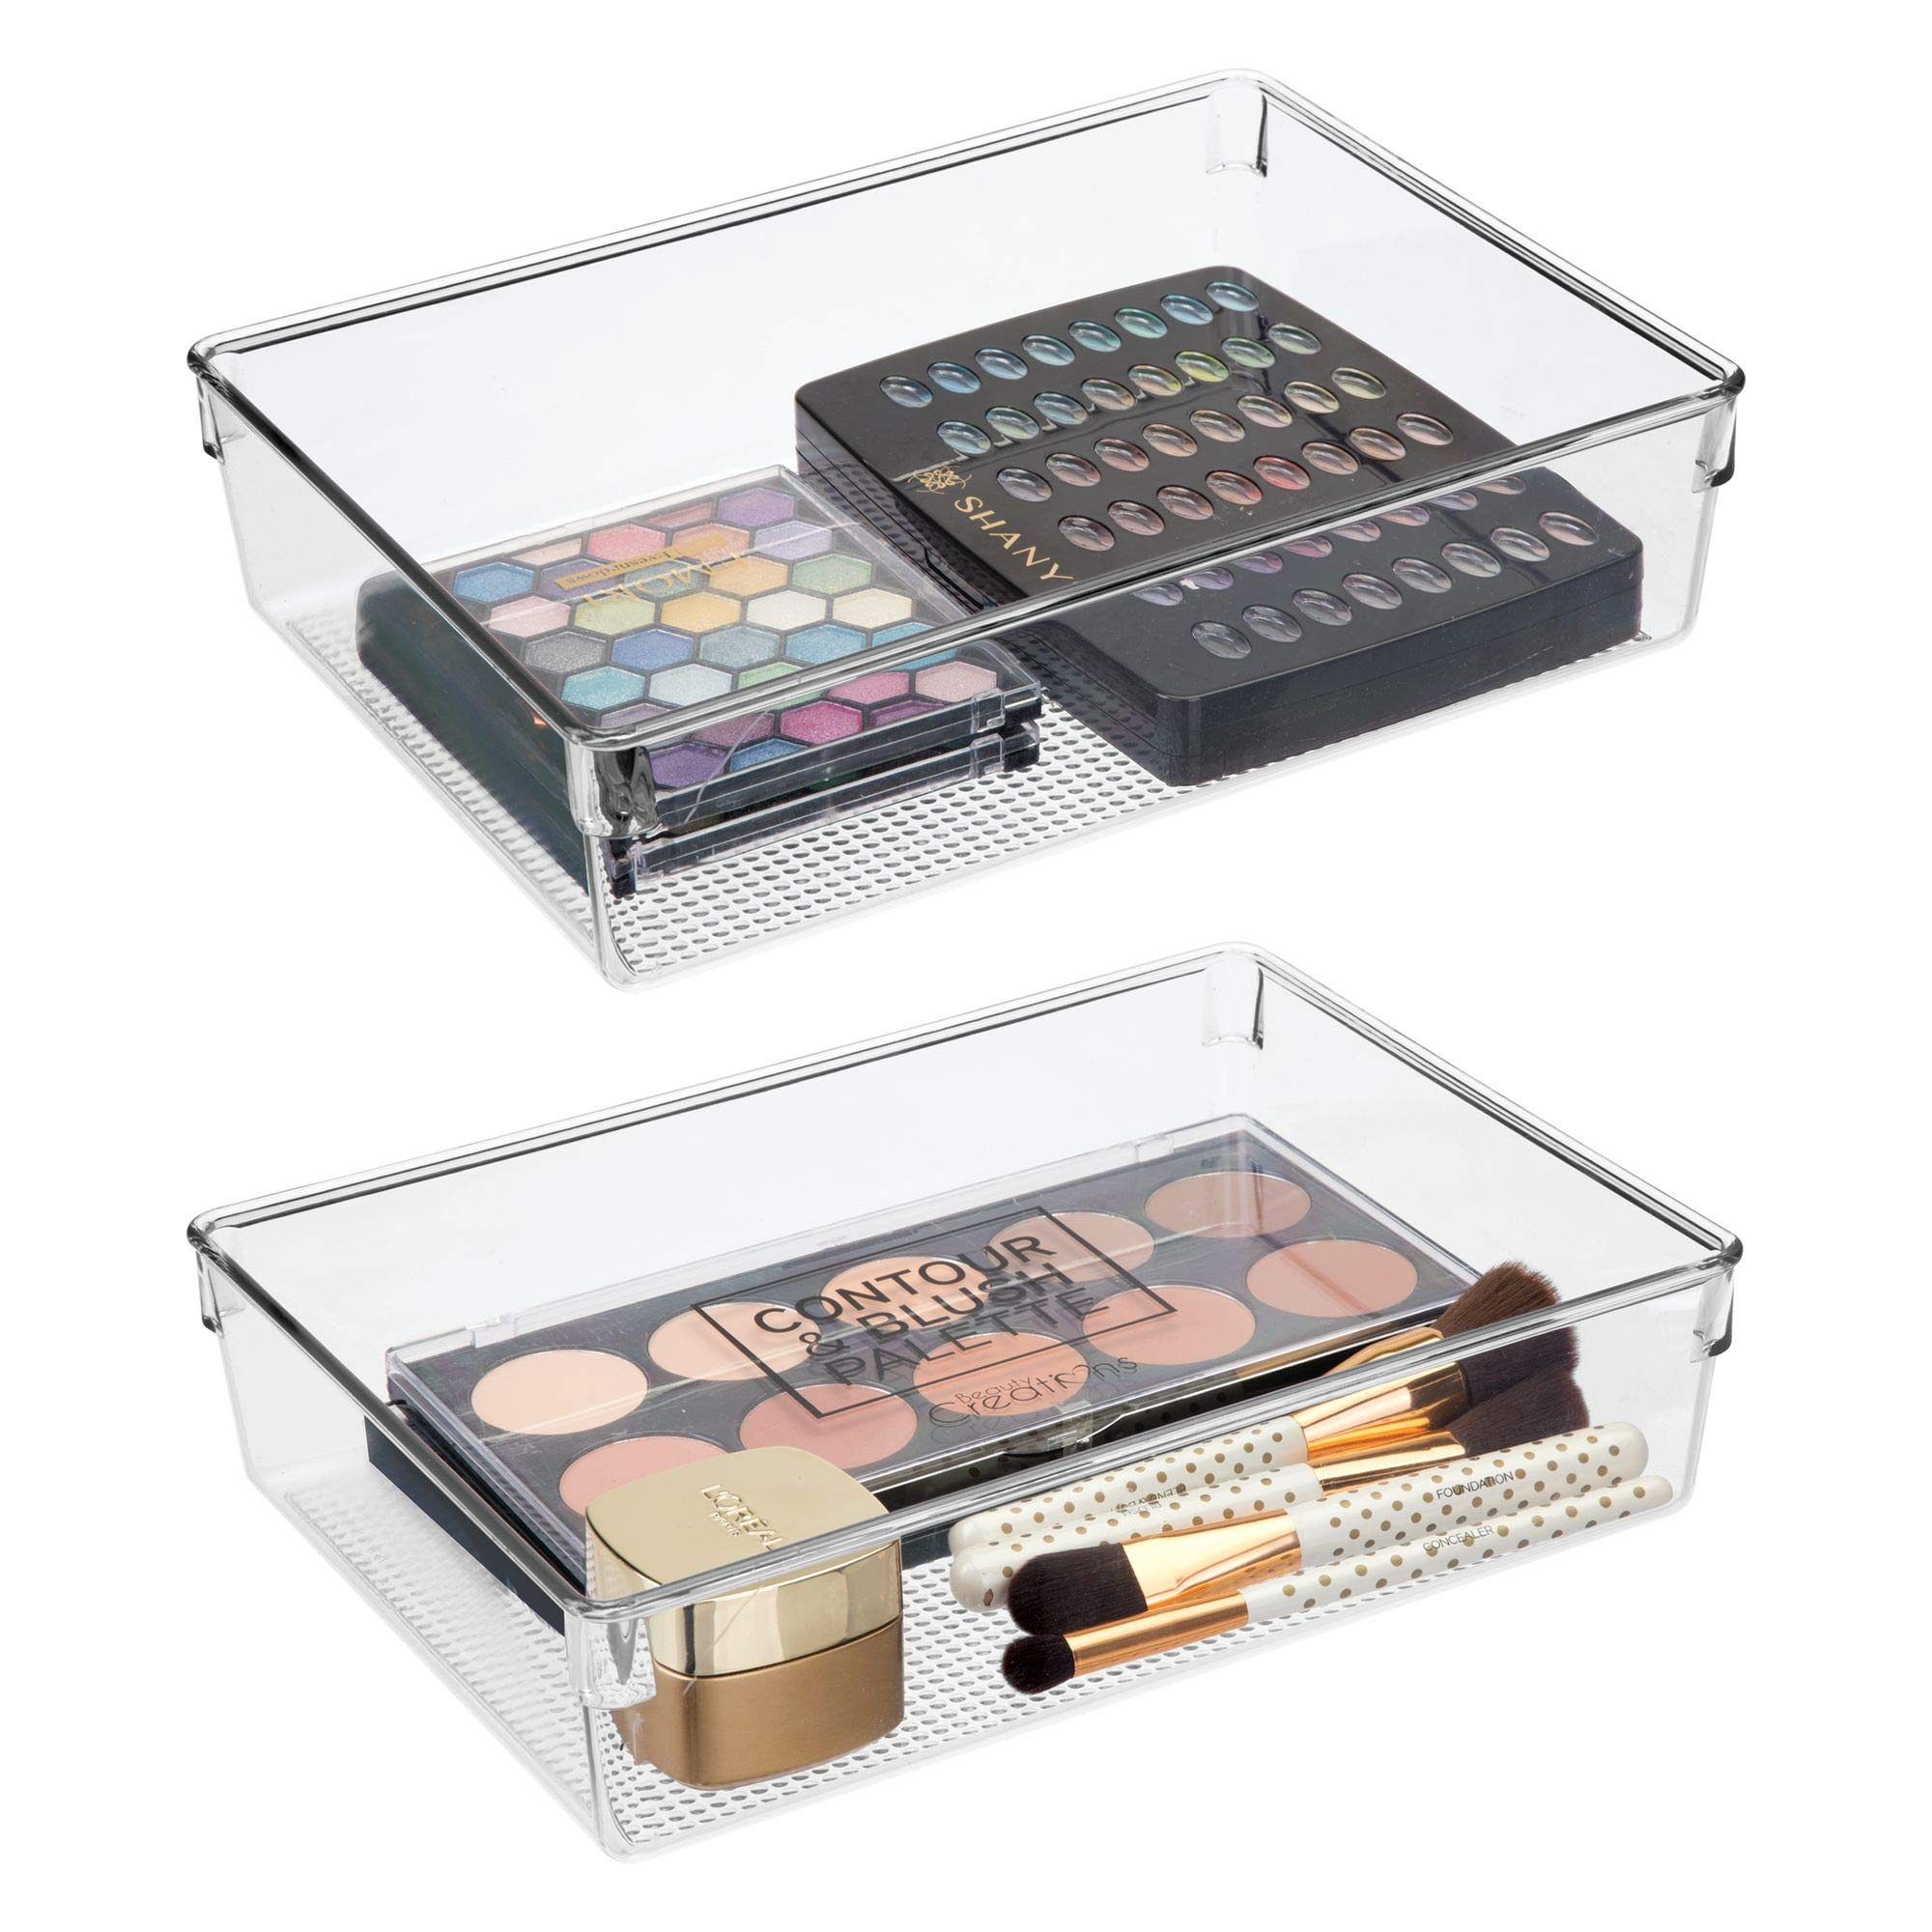 mDesign Bathroom Vanity Drawer Storage Organizer Plastic Bins Trays Holders for Cosmetics, Makeup Palettes, Brushes - Pack of 2, Clear